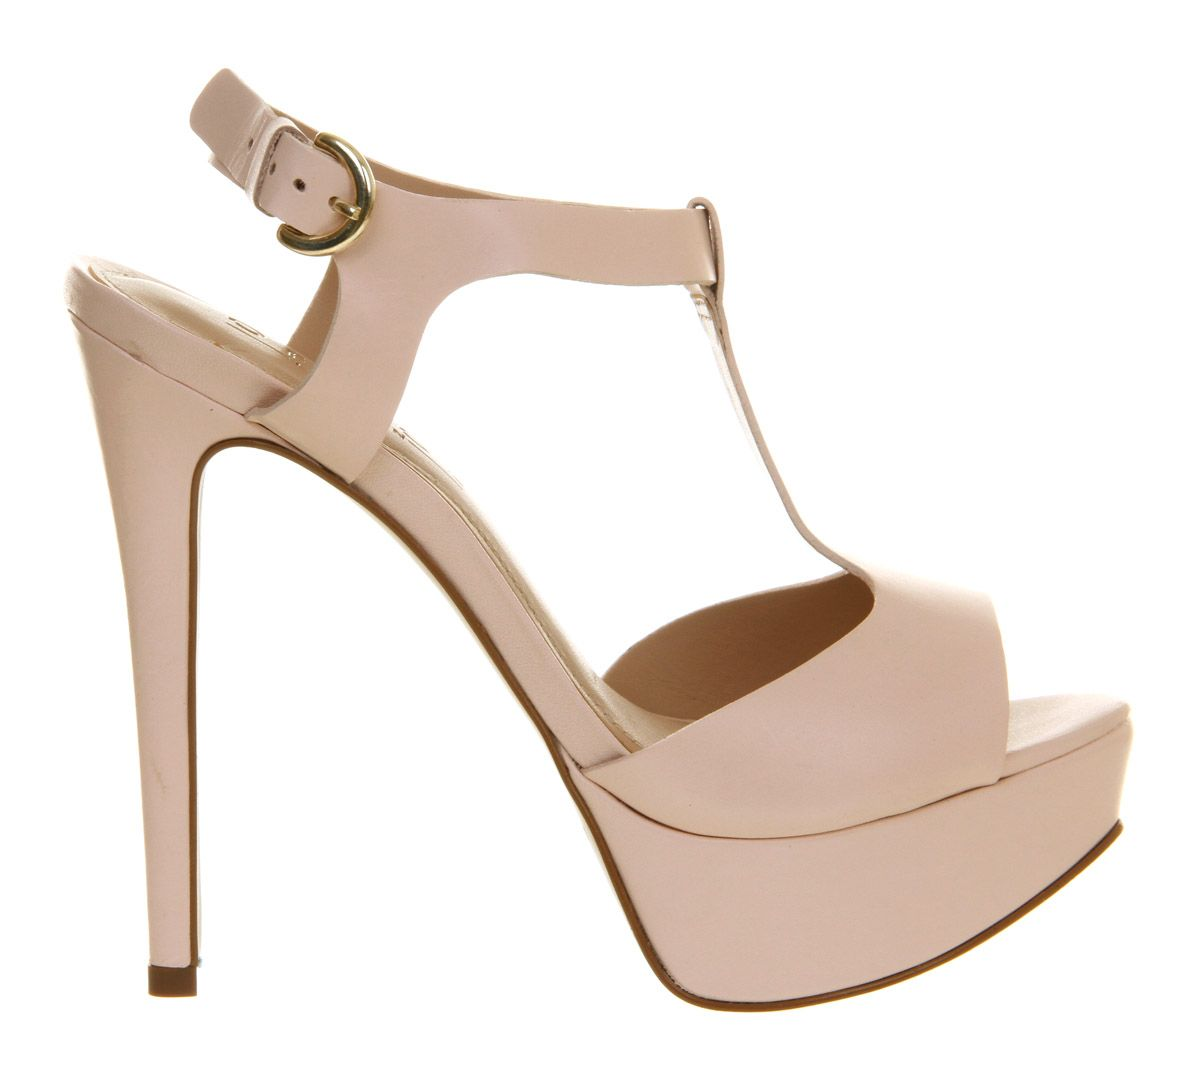 Justice leather open toe buckle platform sandals